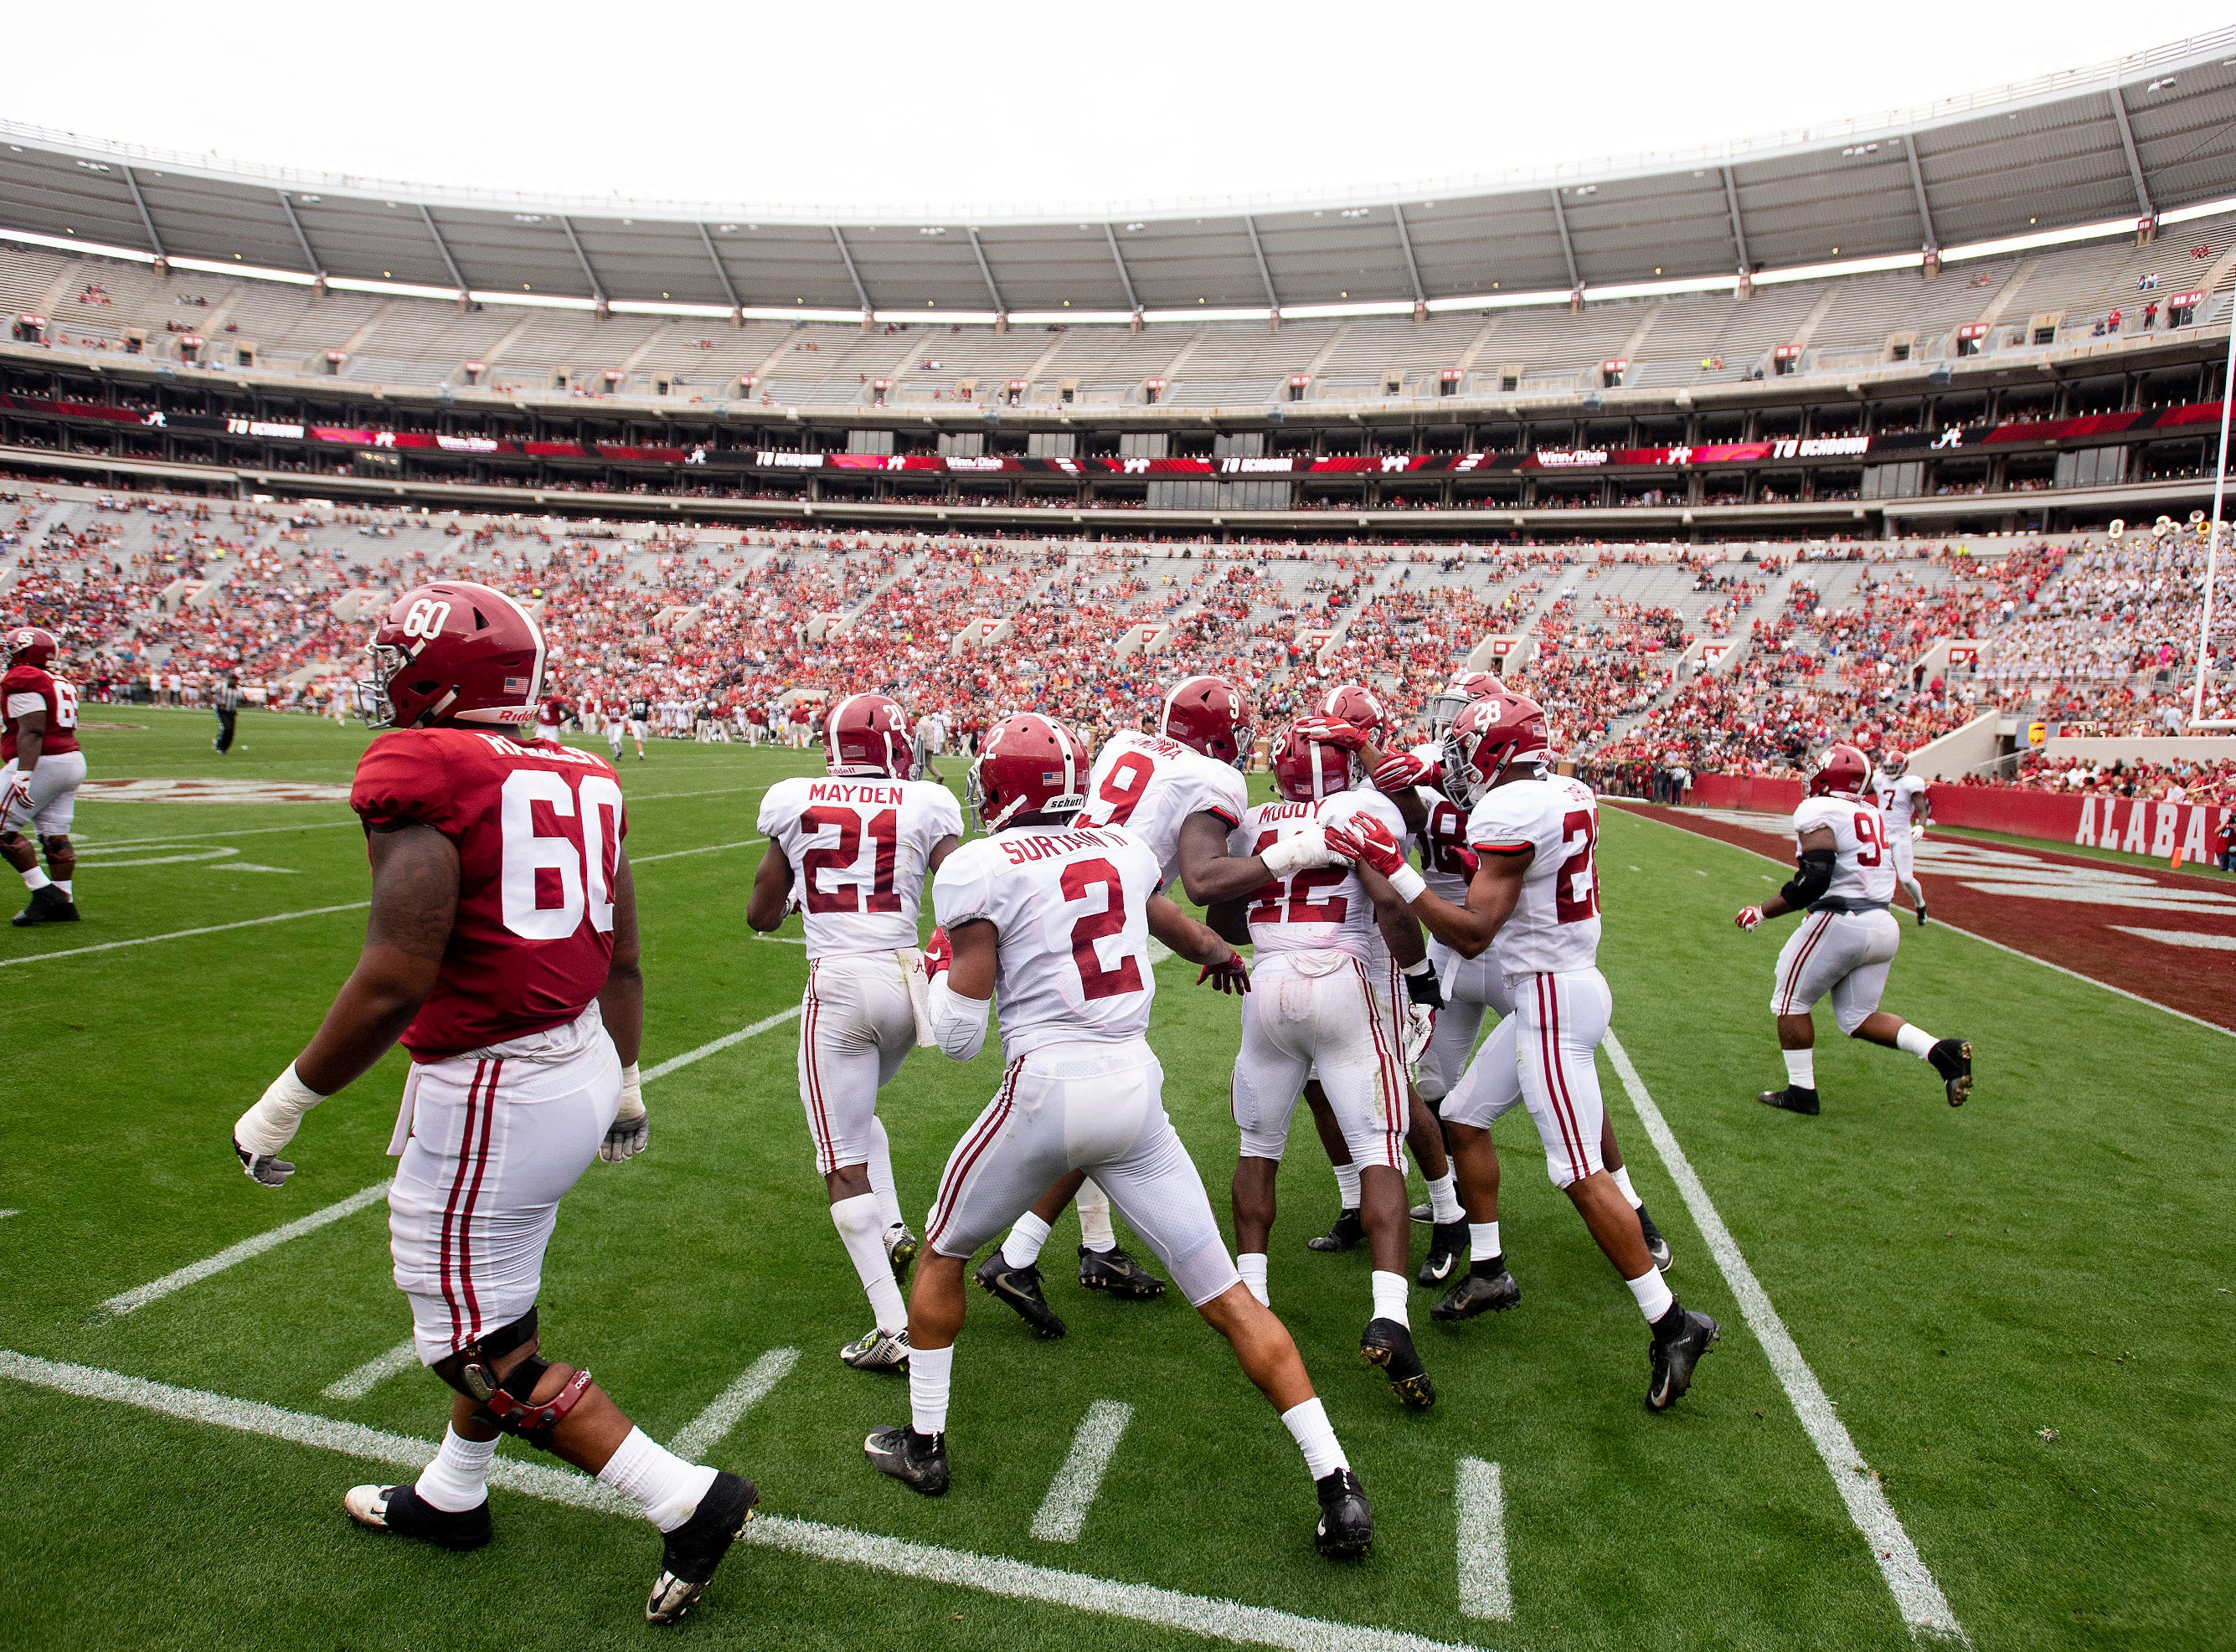 Linebacker Jaylen Moody (42) is congratulated after scoring a touchdown on an interception during second half action in the Alabama A-Day spring football scrimmage game at Bryant Denny Stadium in Tuscaloosa, Ala., on Saturday April 13, 2019.